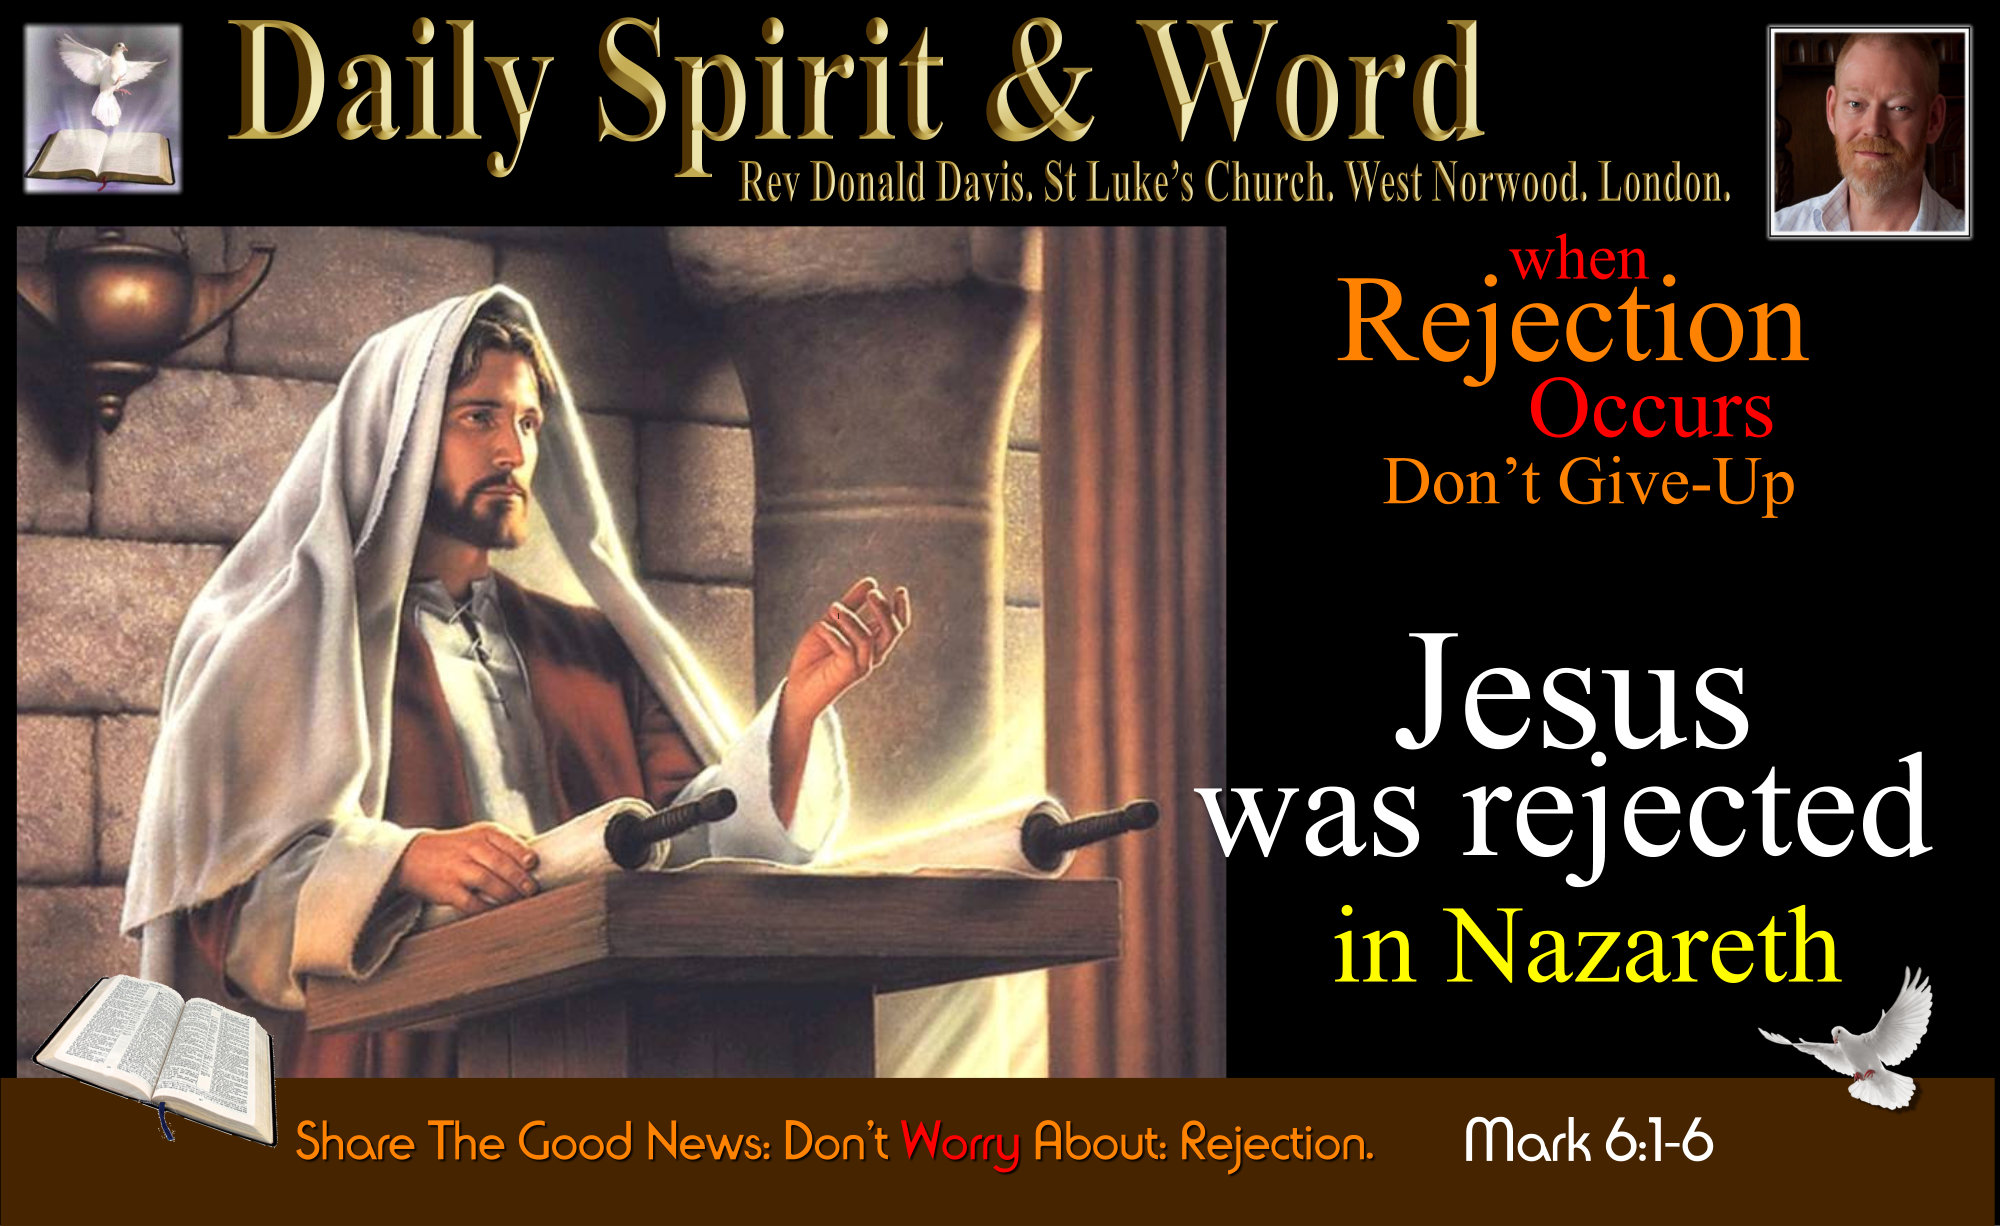 Jesus experienced rejection of his own family, friends, townsfolk, so don't give up or give in to the fear of rejection,